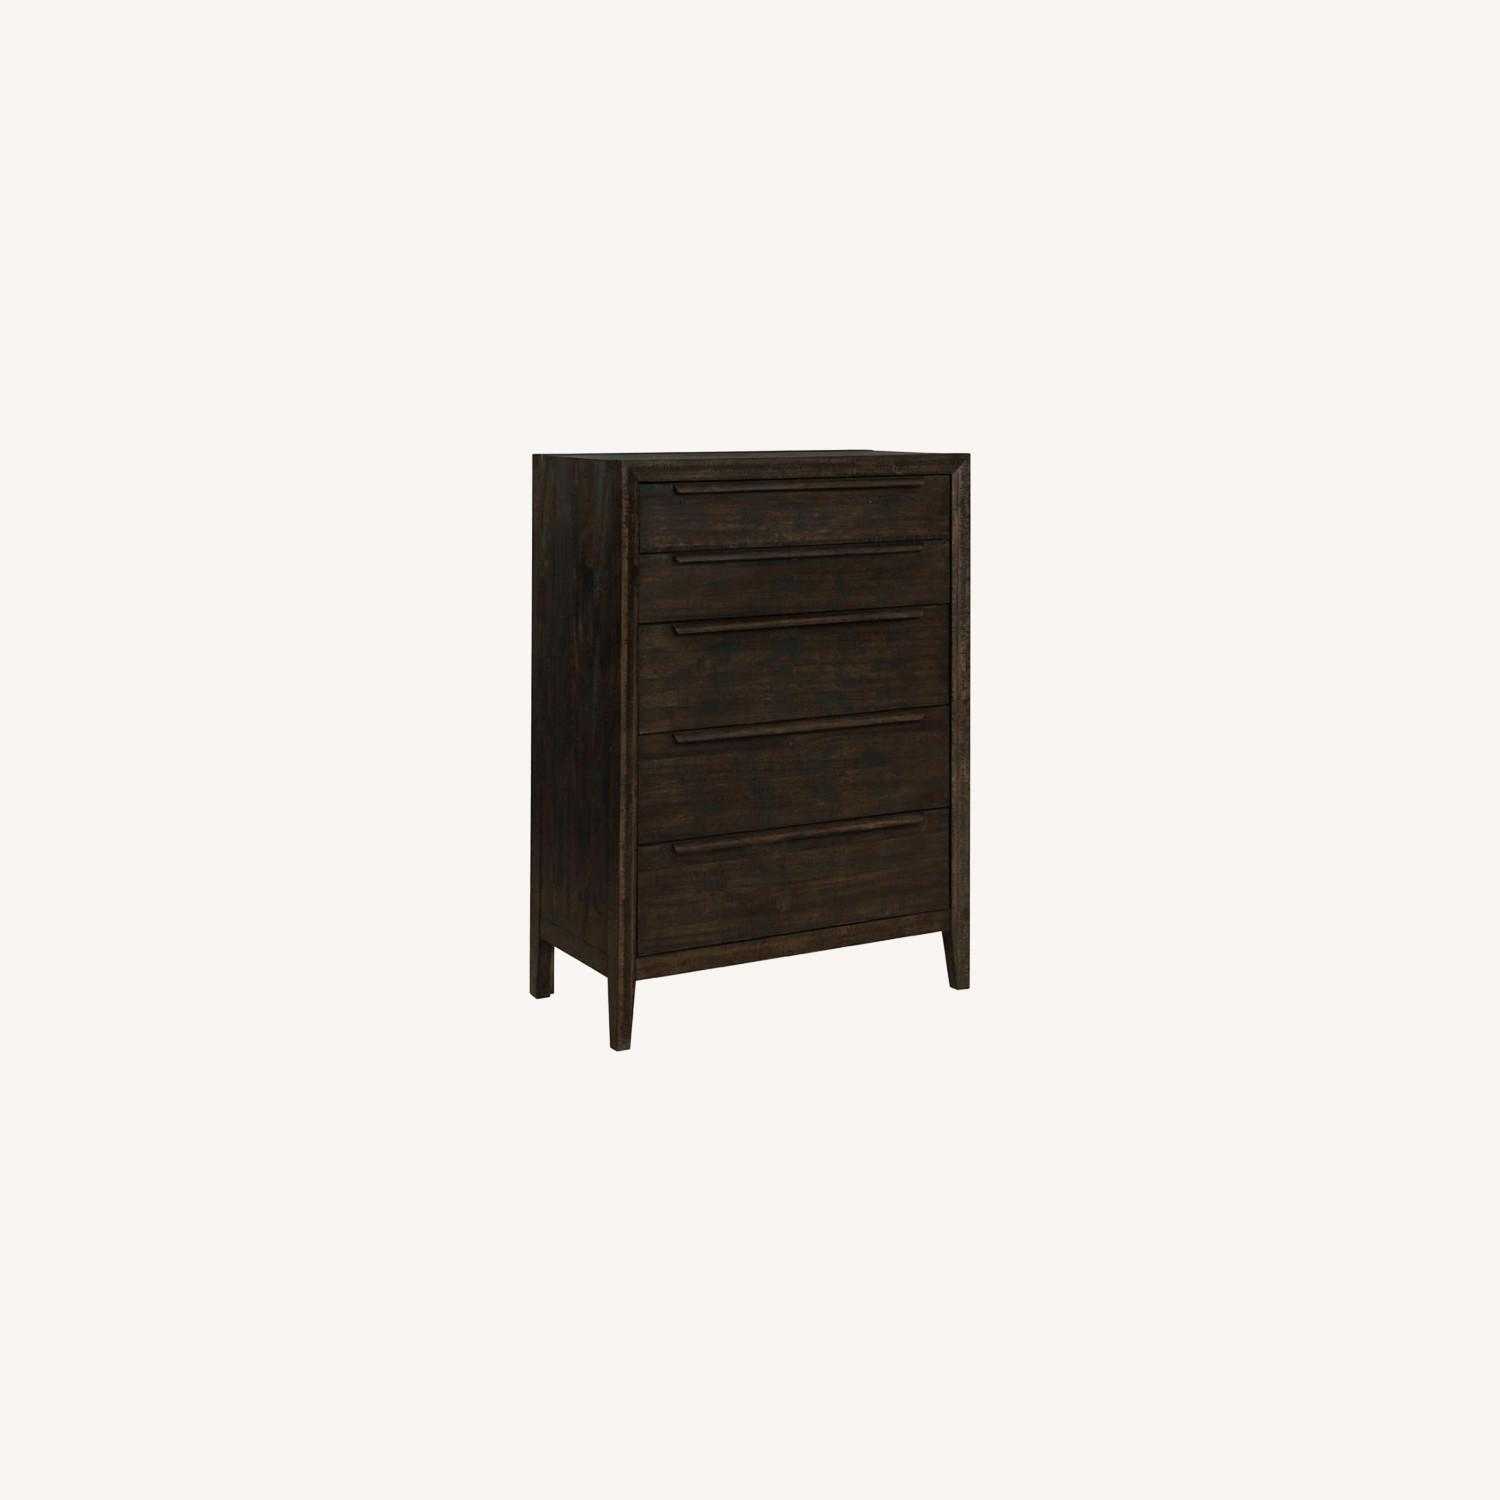 5-Drawer Chest In French Press Finish - image-3